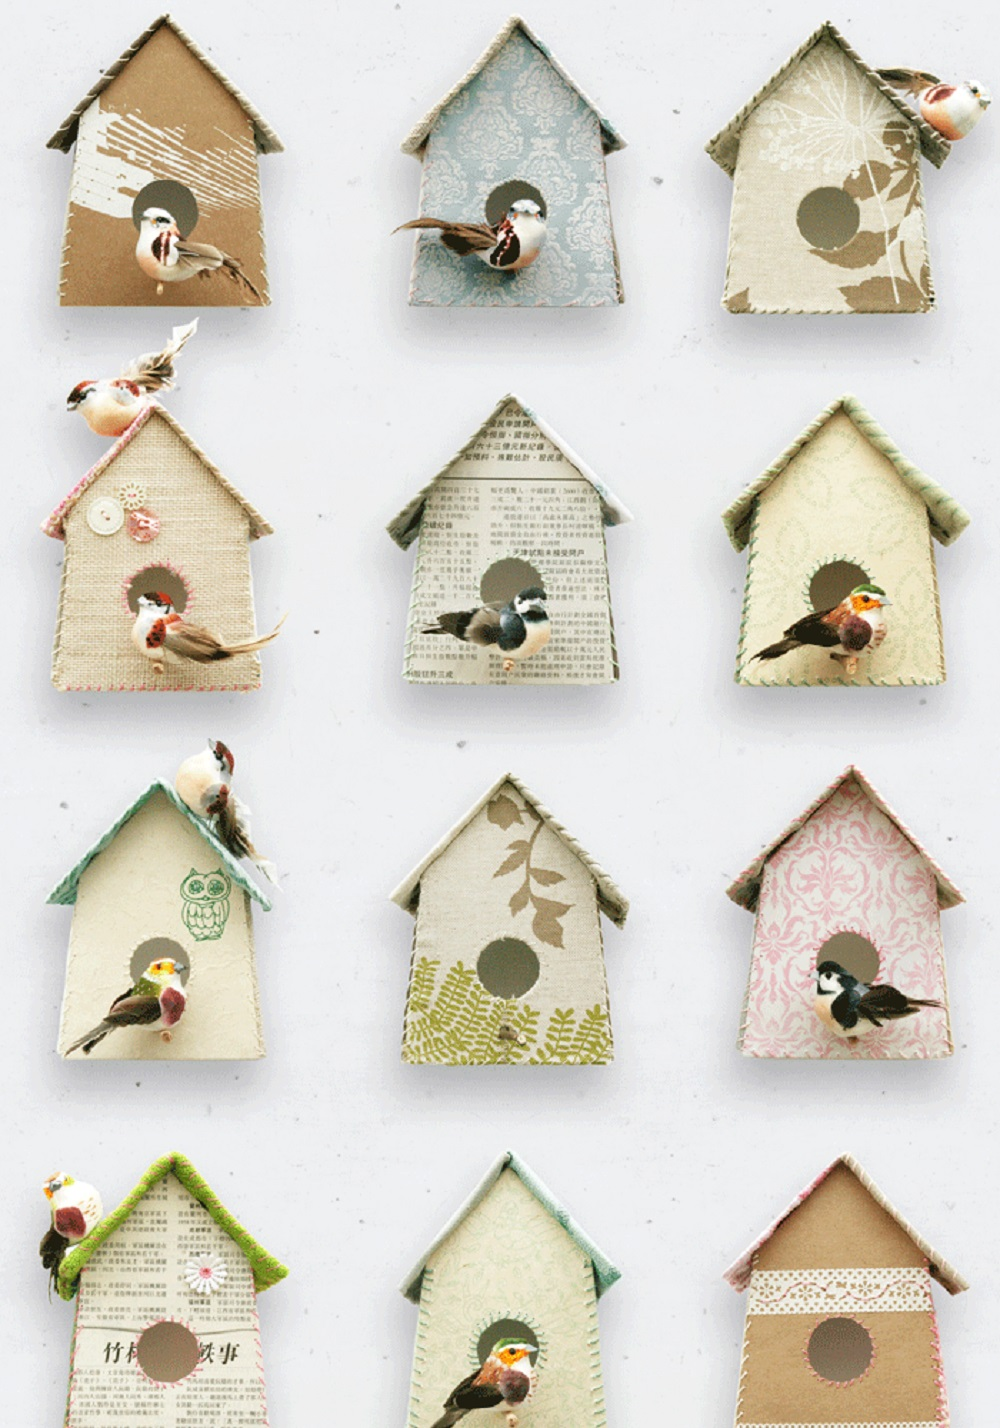 Finds bird house wallpaper Homegirl London 1000x1428